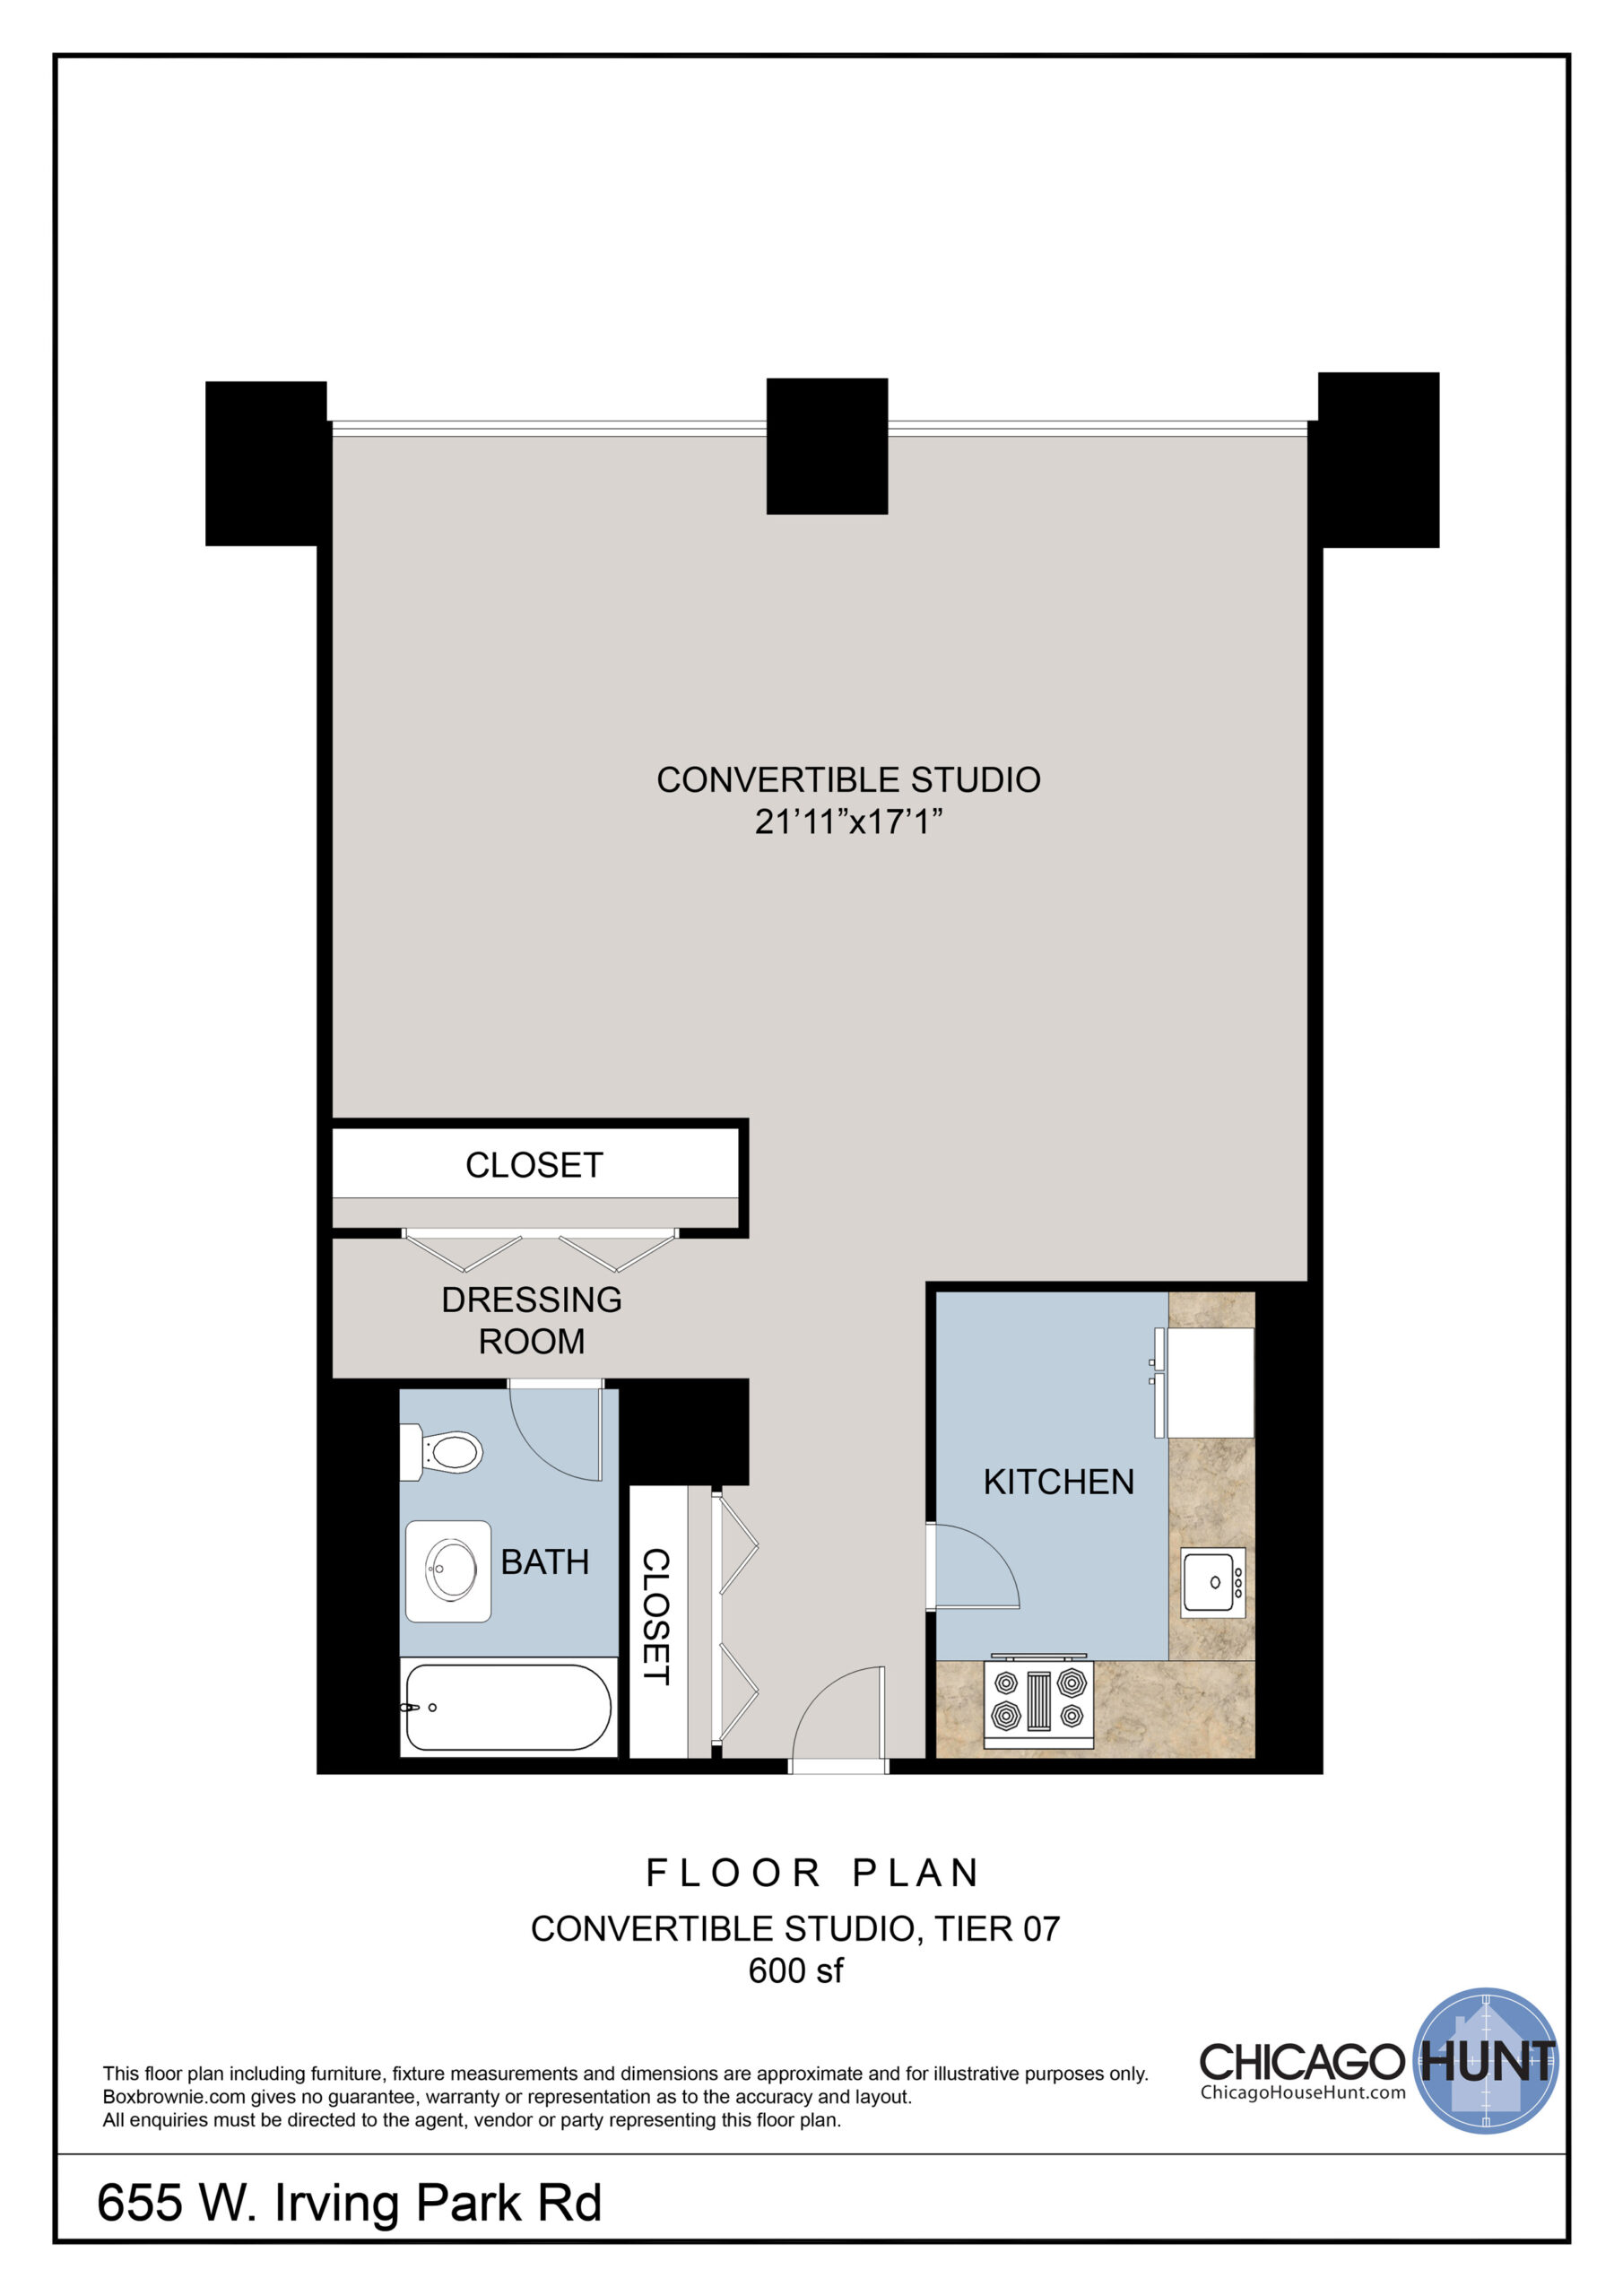 655 Irving Park, Park Place Tower - Floor Plan - Tier 07